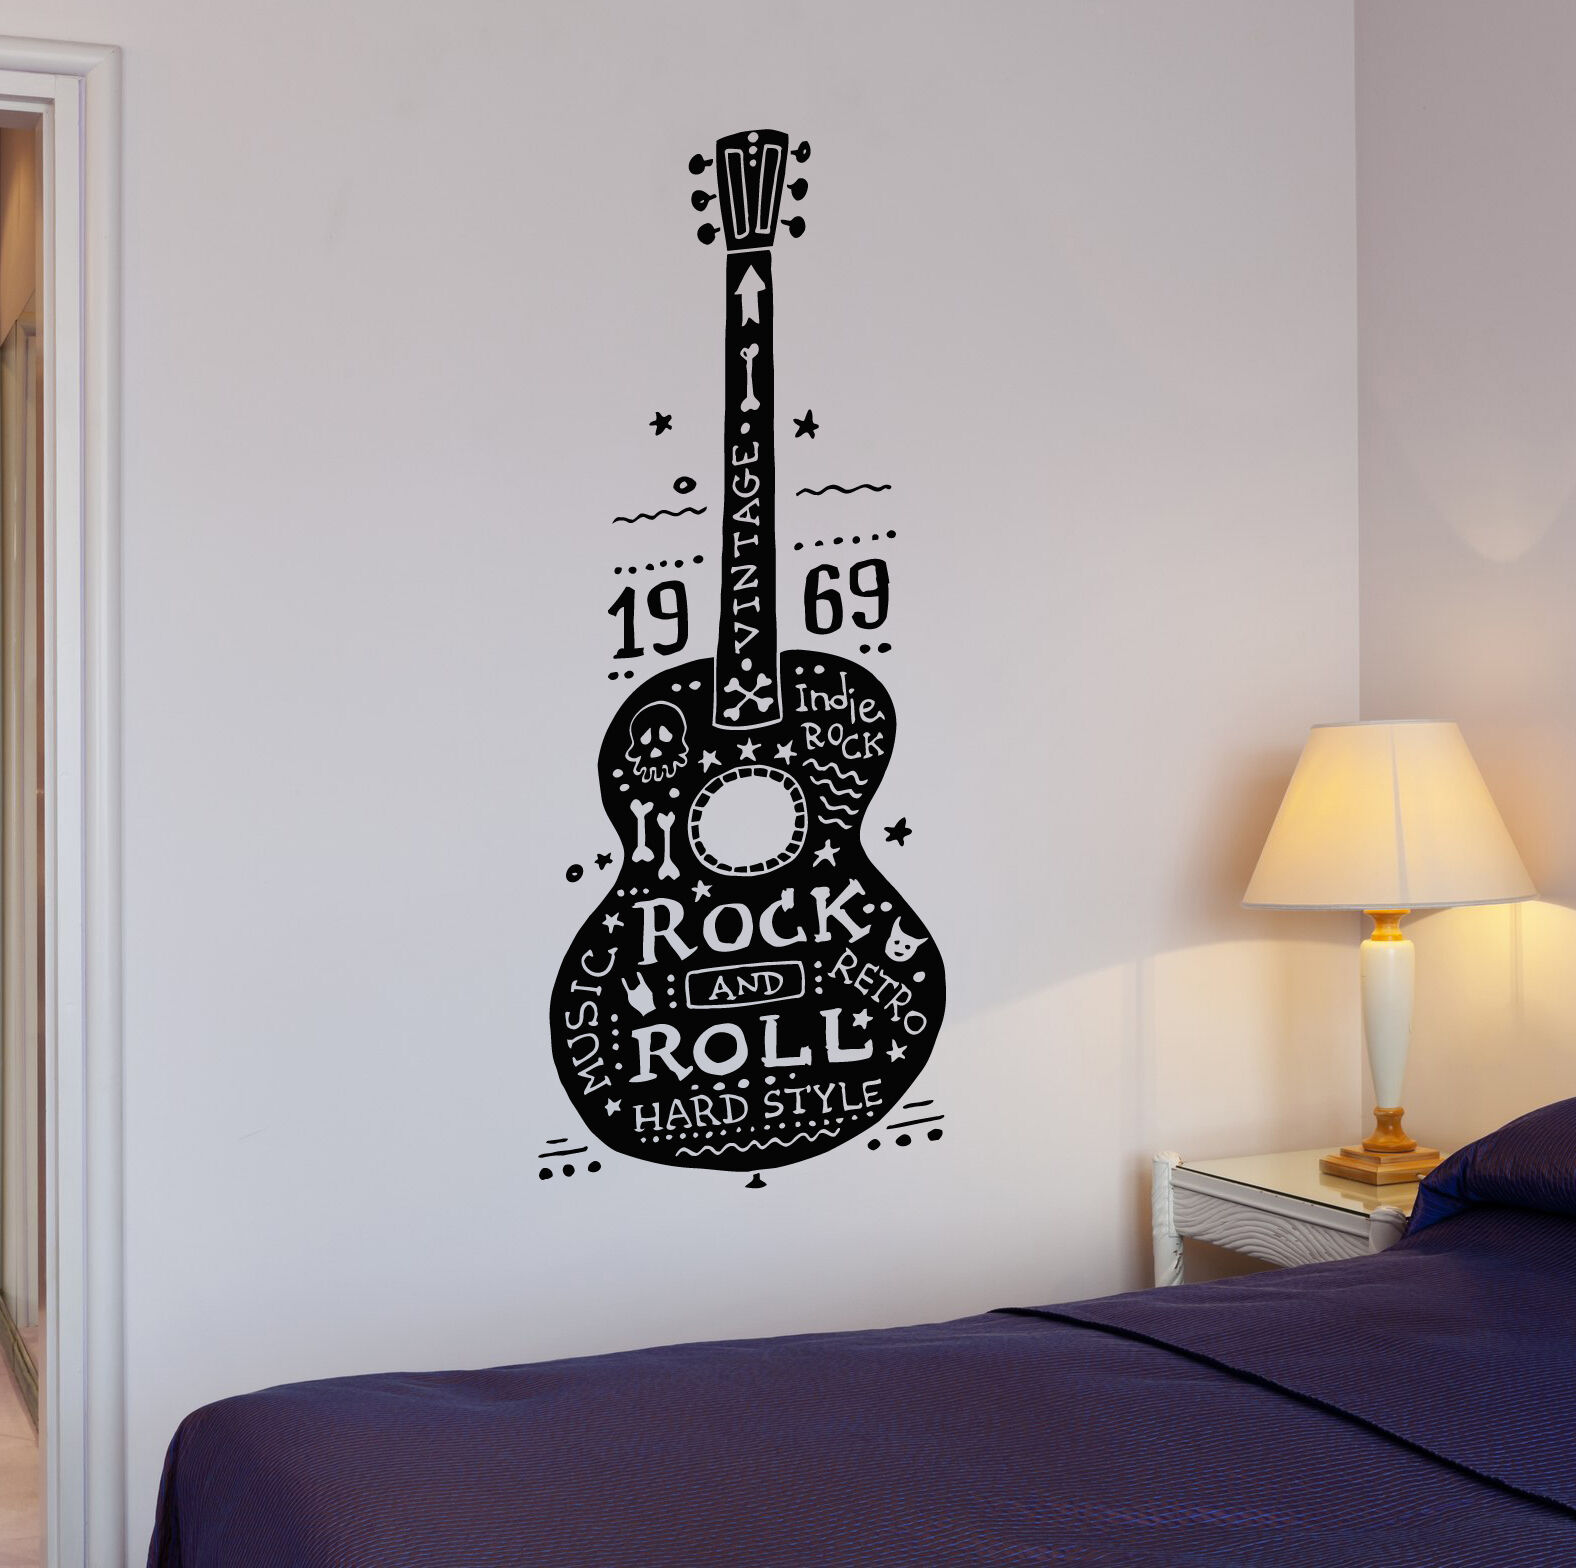 Guitar Rock and Roll Music Hard Retro Hippies Wall Decal Vin